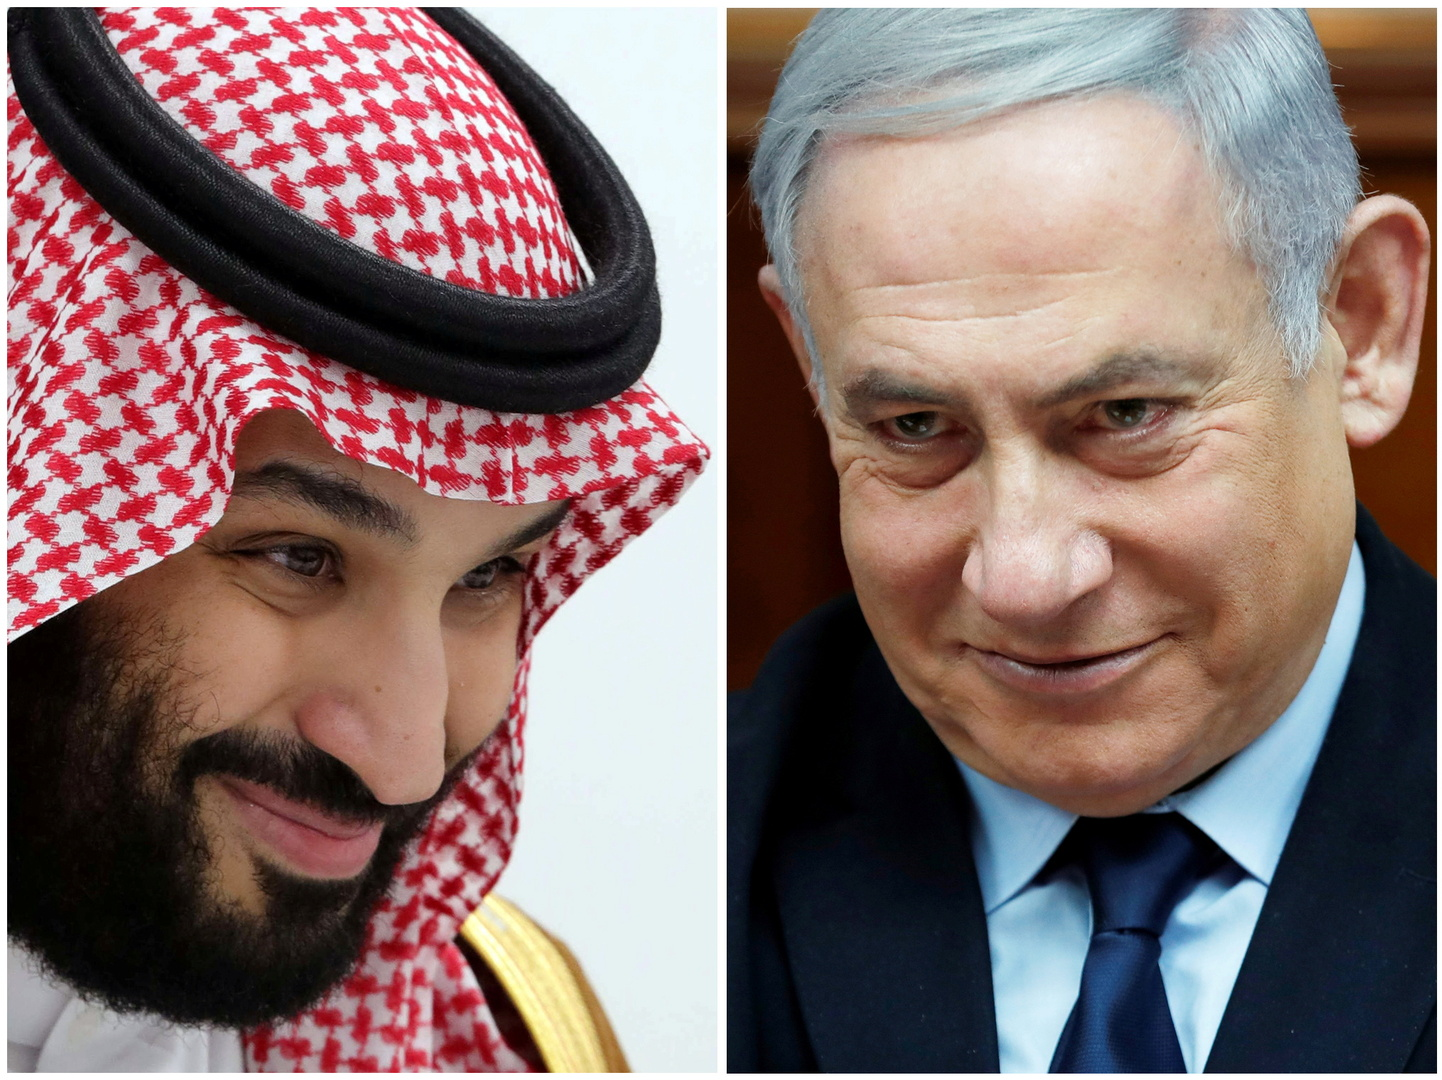 Reports: Saudi Arabia will normalize relations with Israel within 12 months